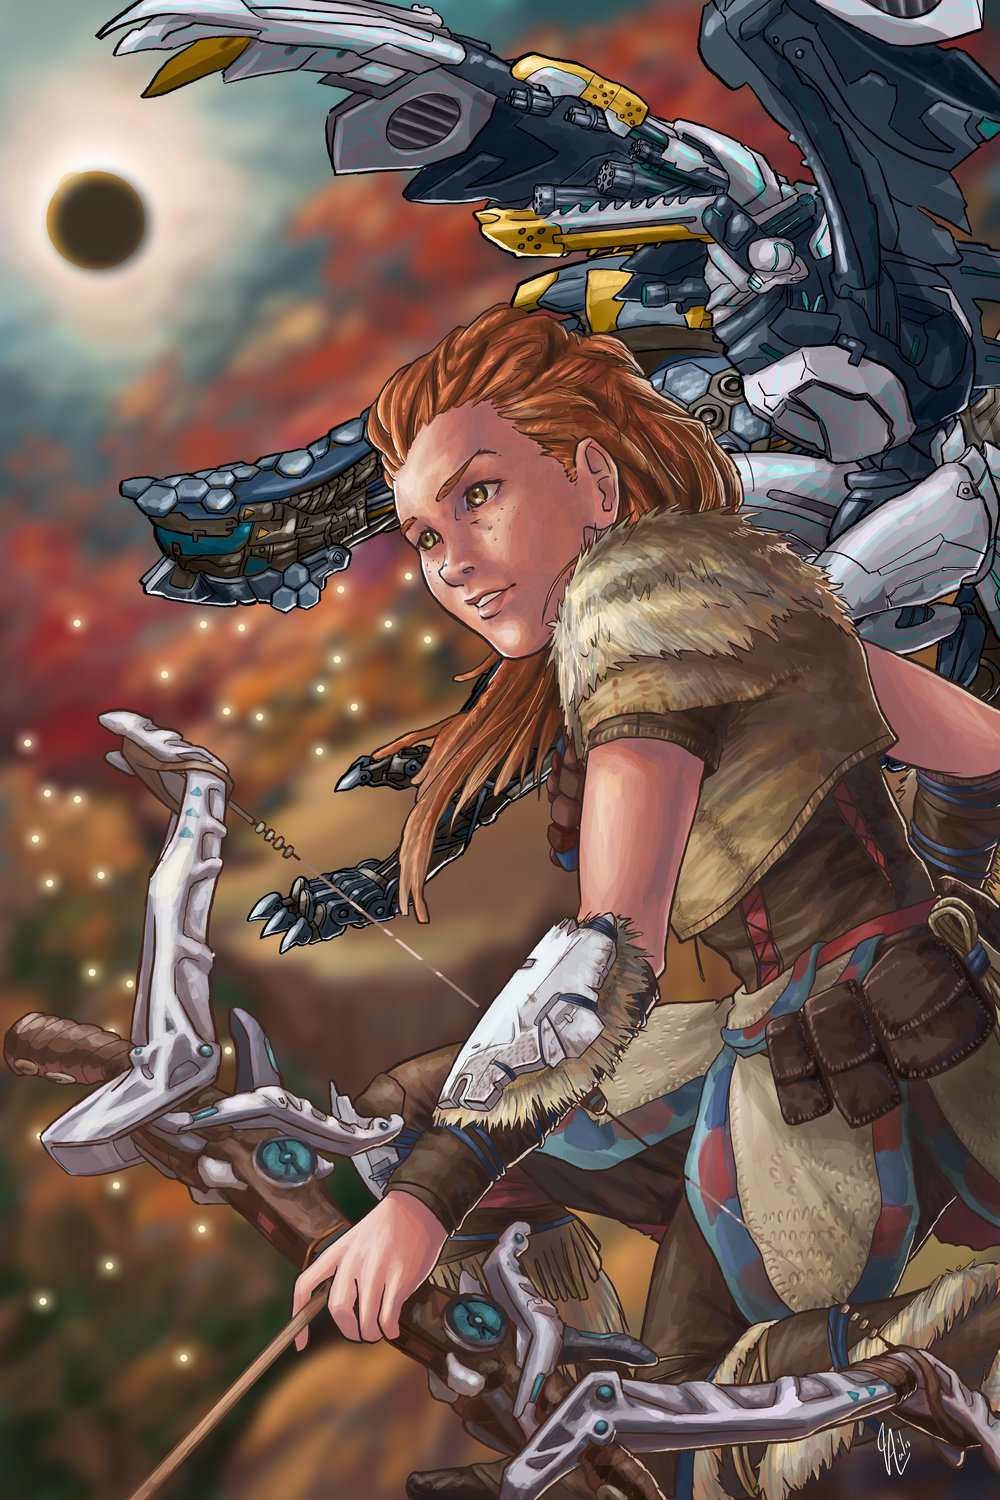 Horizon Zero Dawn - Eclipse (fanart)